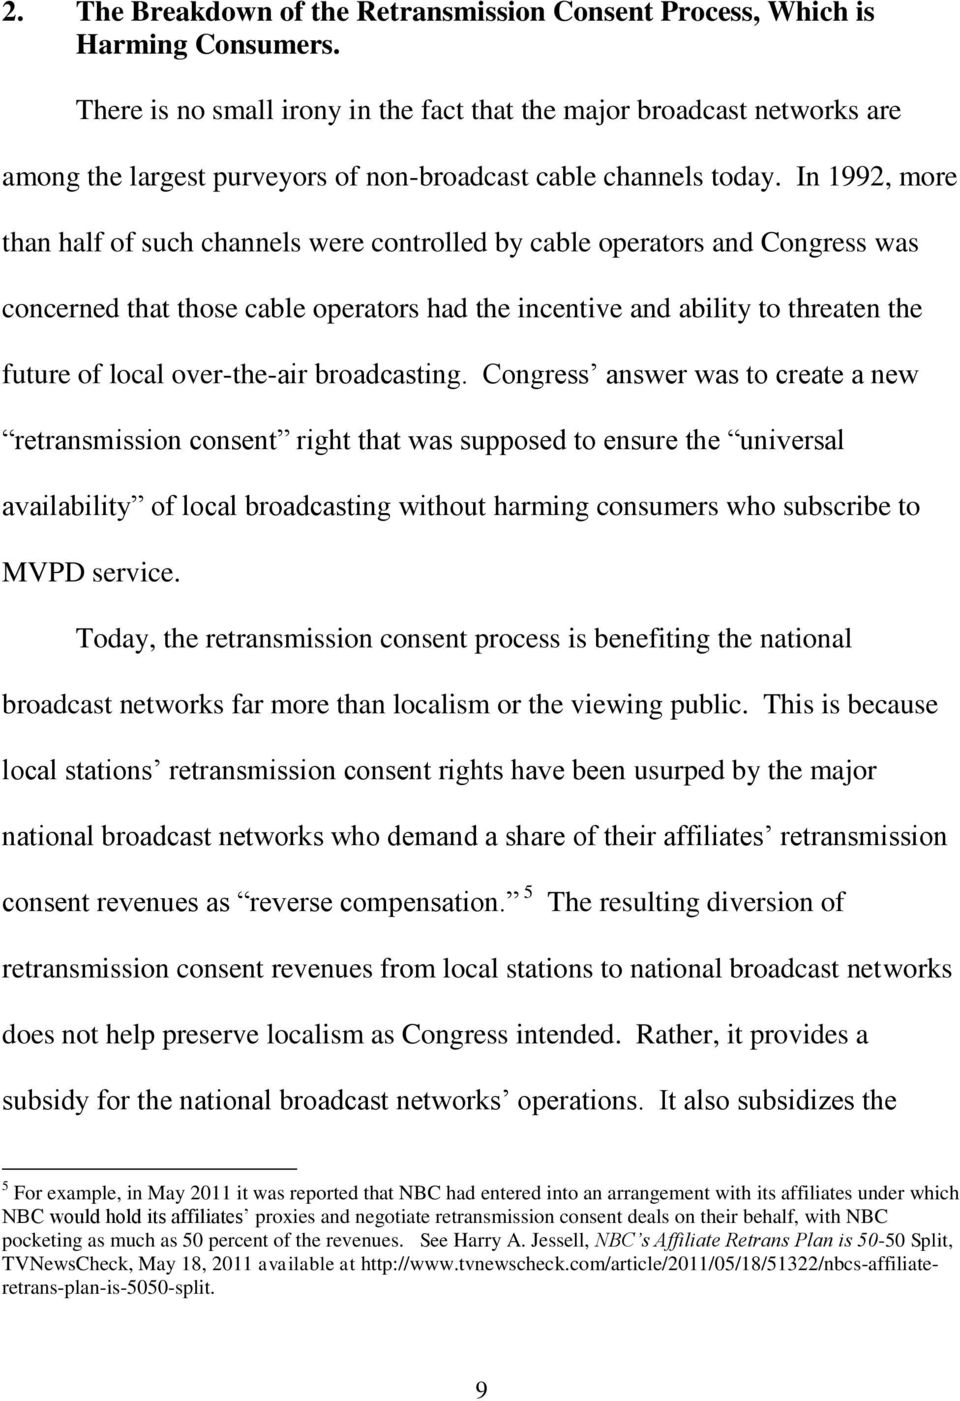 In 1992, more than half of such channels were controlled by cable operators and Congress was concerned that those cable operators had the incentive and ability to threaten the future of local